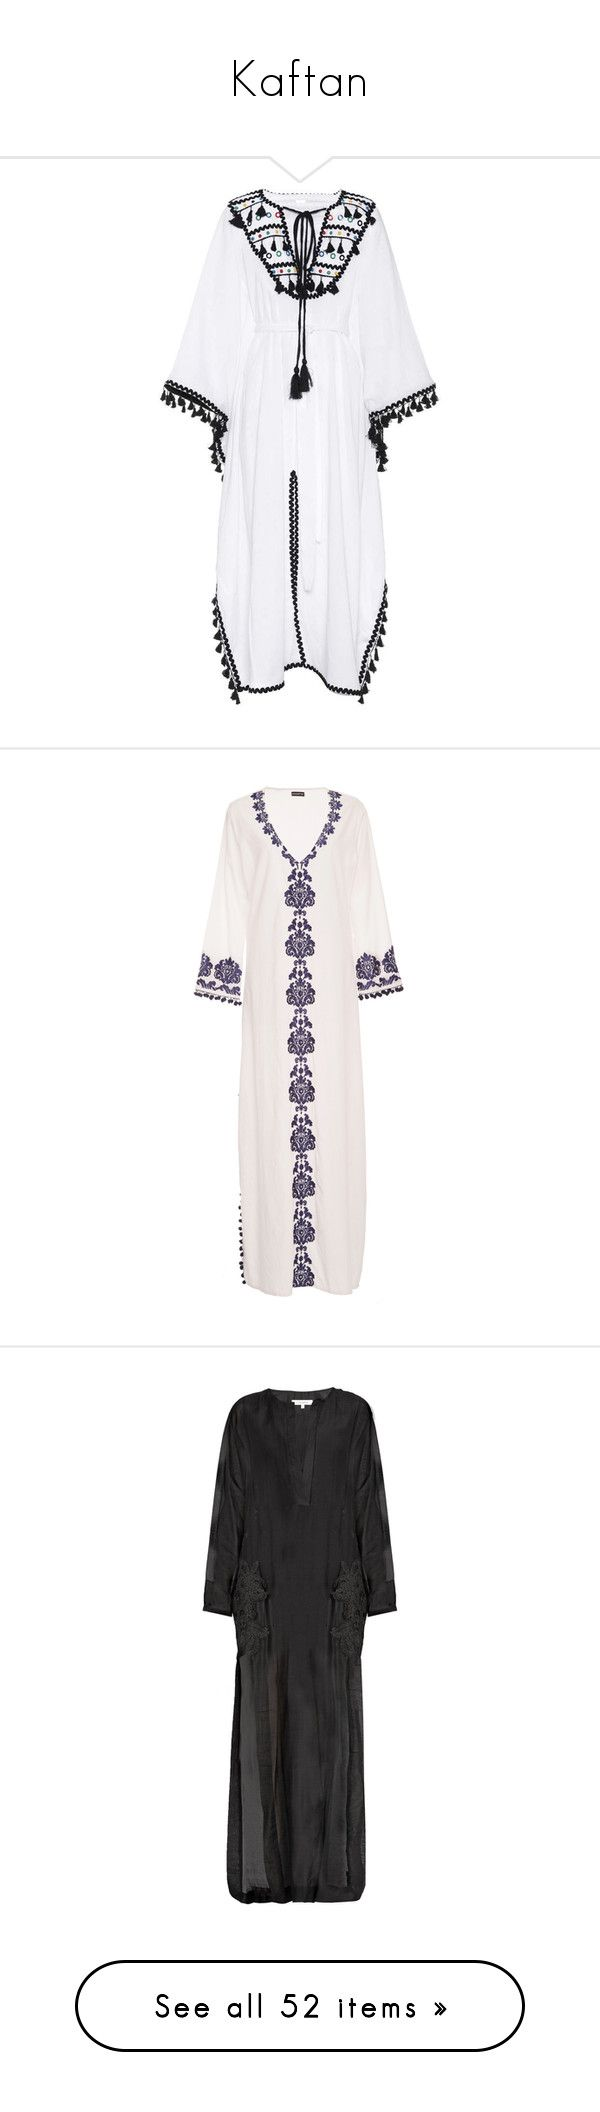 """""""Kaftan"""" by nblckwjy ❤ liked on Polyvore featuring tops, tunics, white, white kaftan top, cotton kaftan, white cotton tunic, kaftan tunic, cotton caftan, white tunic and white embroidered top"""